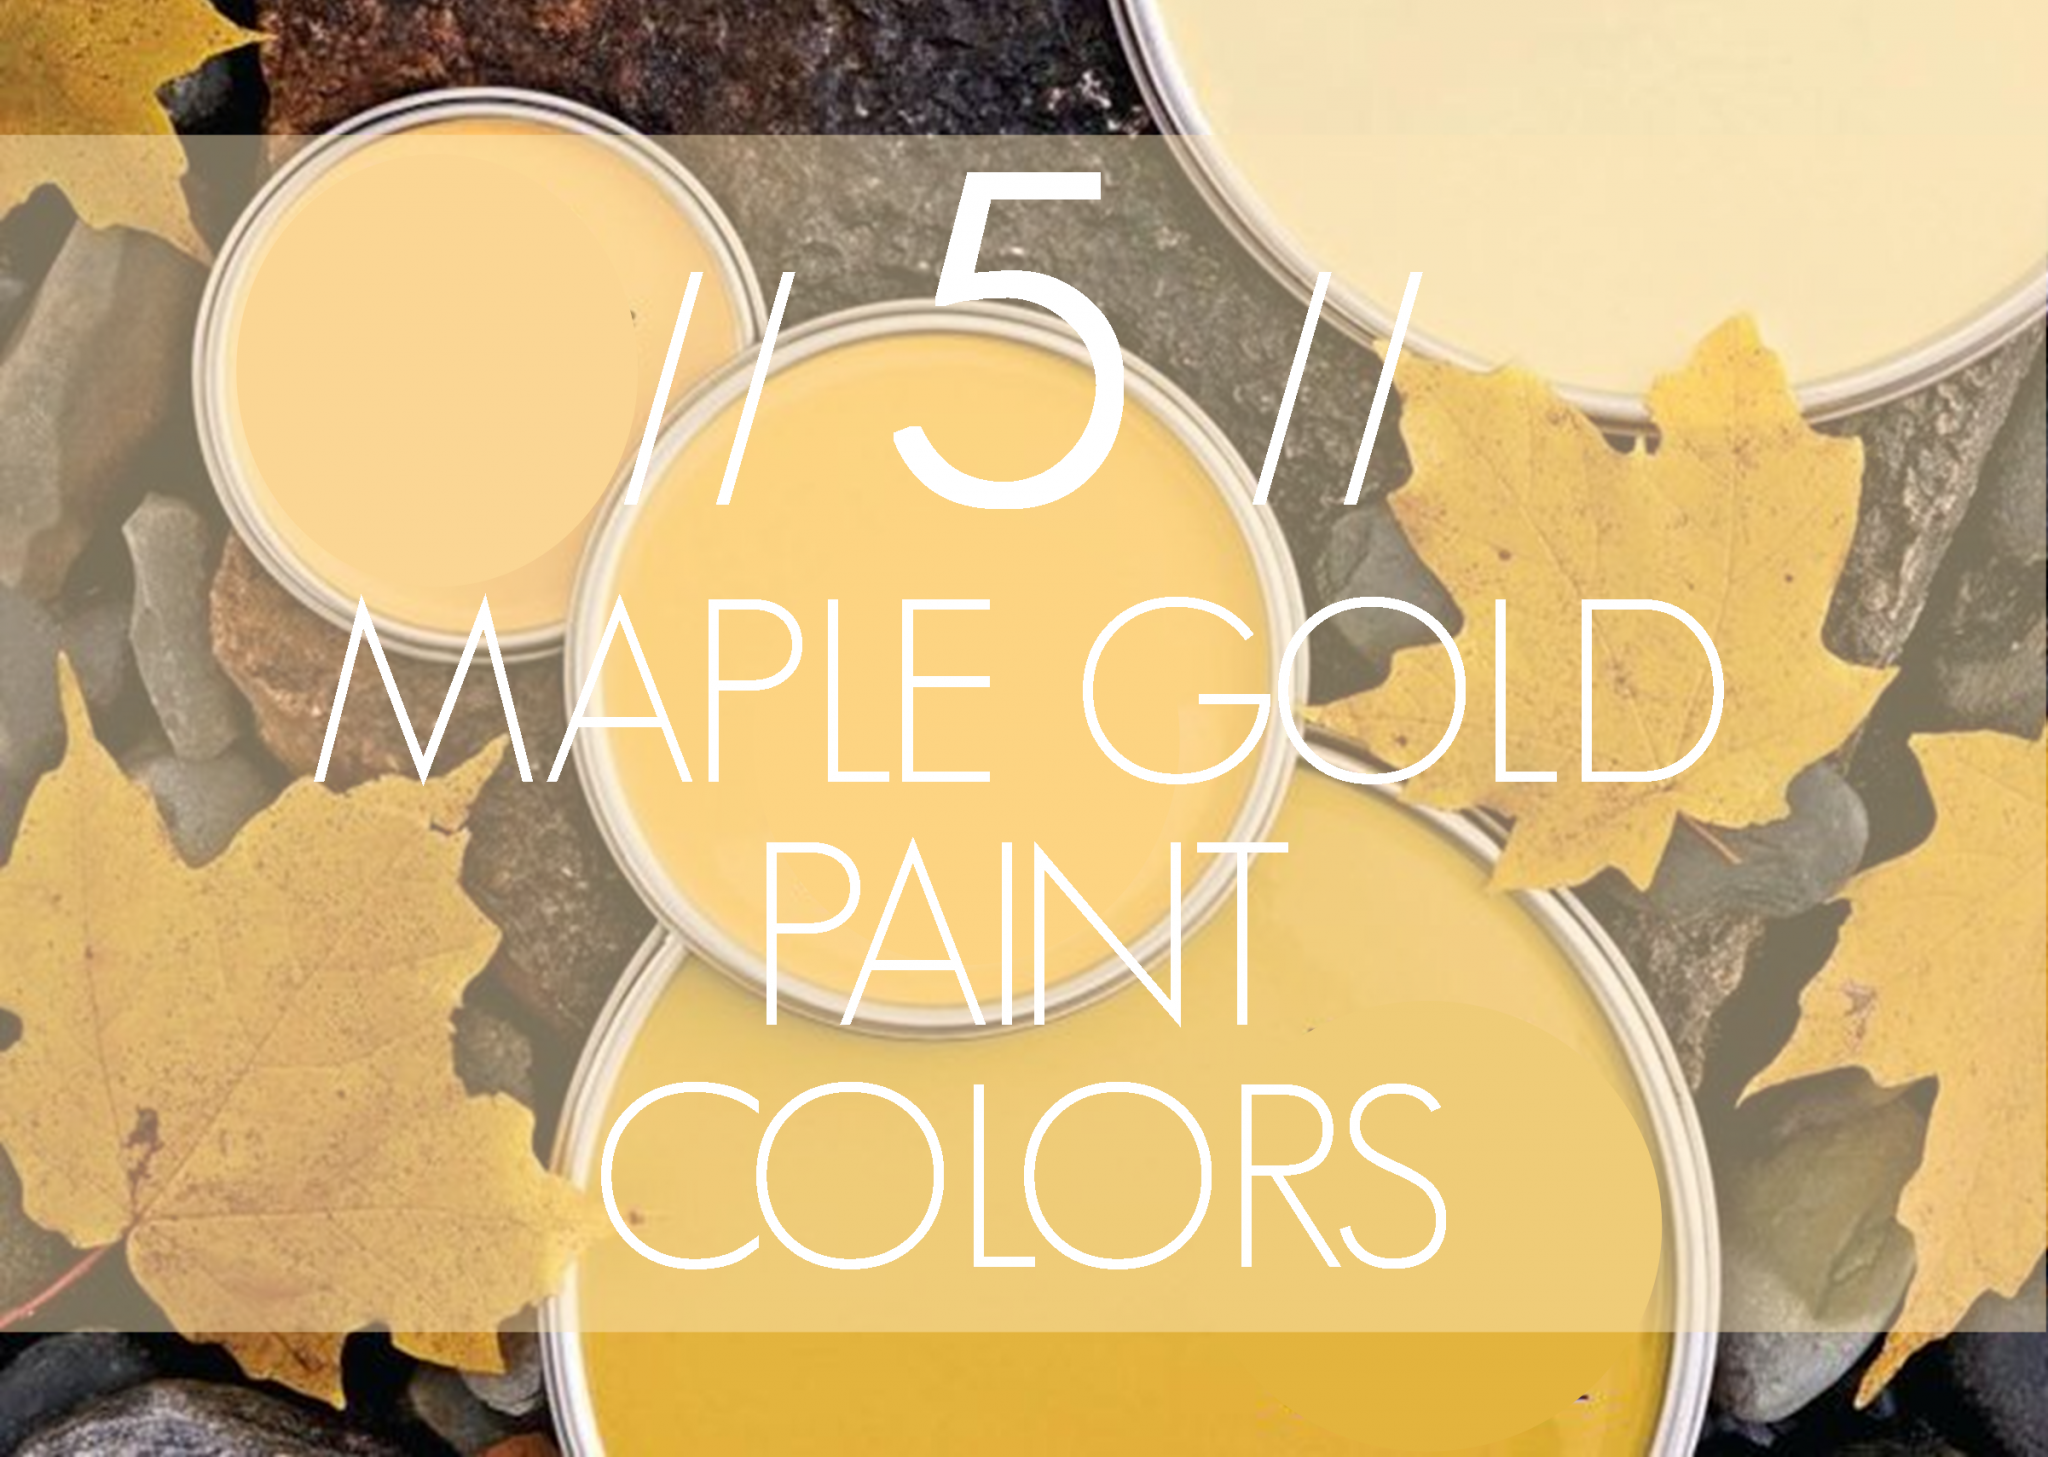 Imagine Design » 5 Maple Gold Paint Colors from Better Homes & Gardens